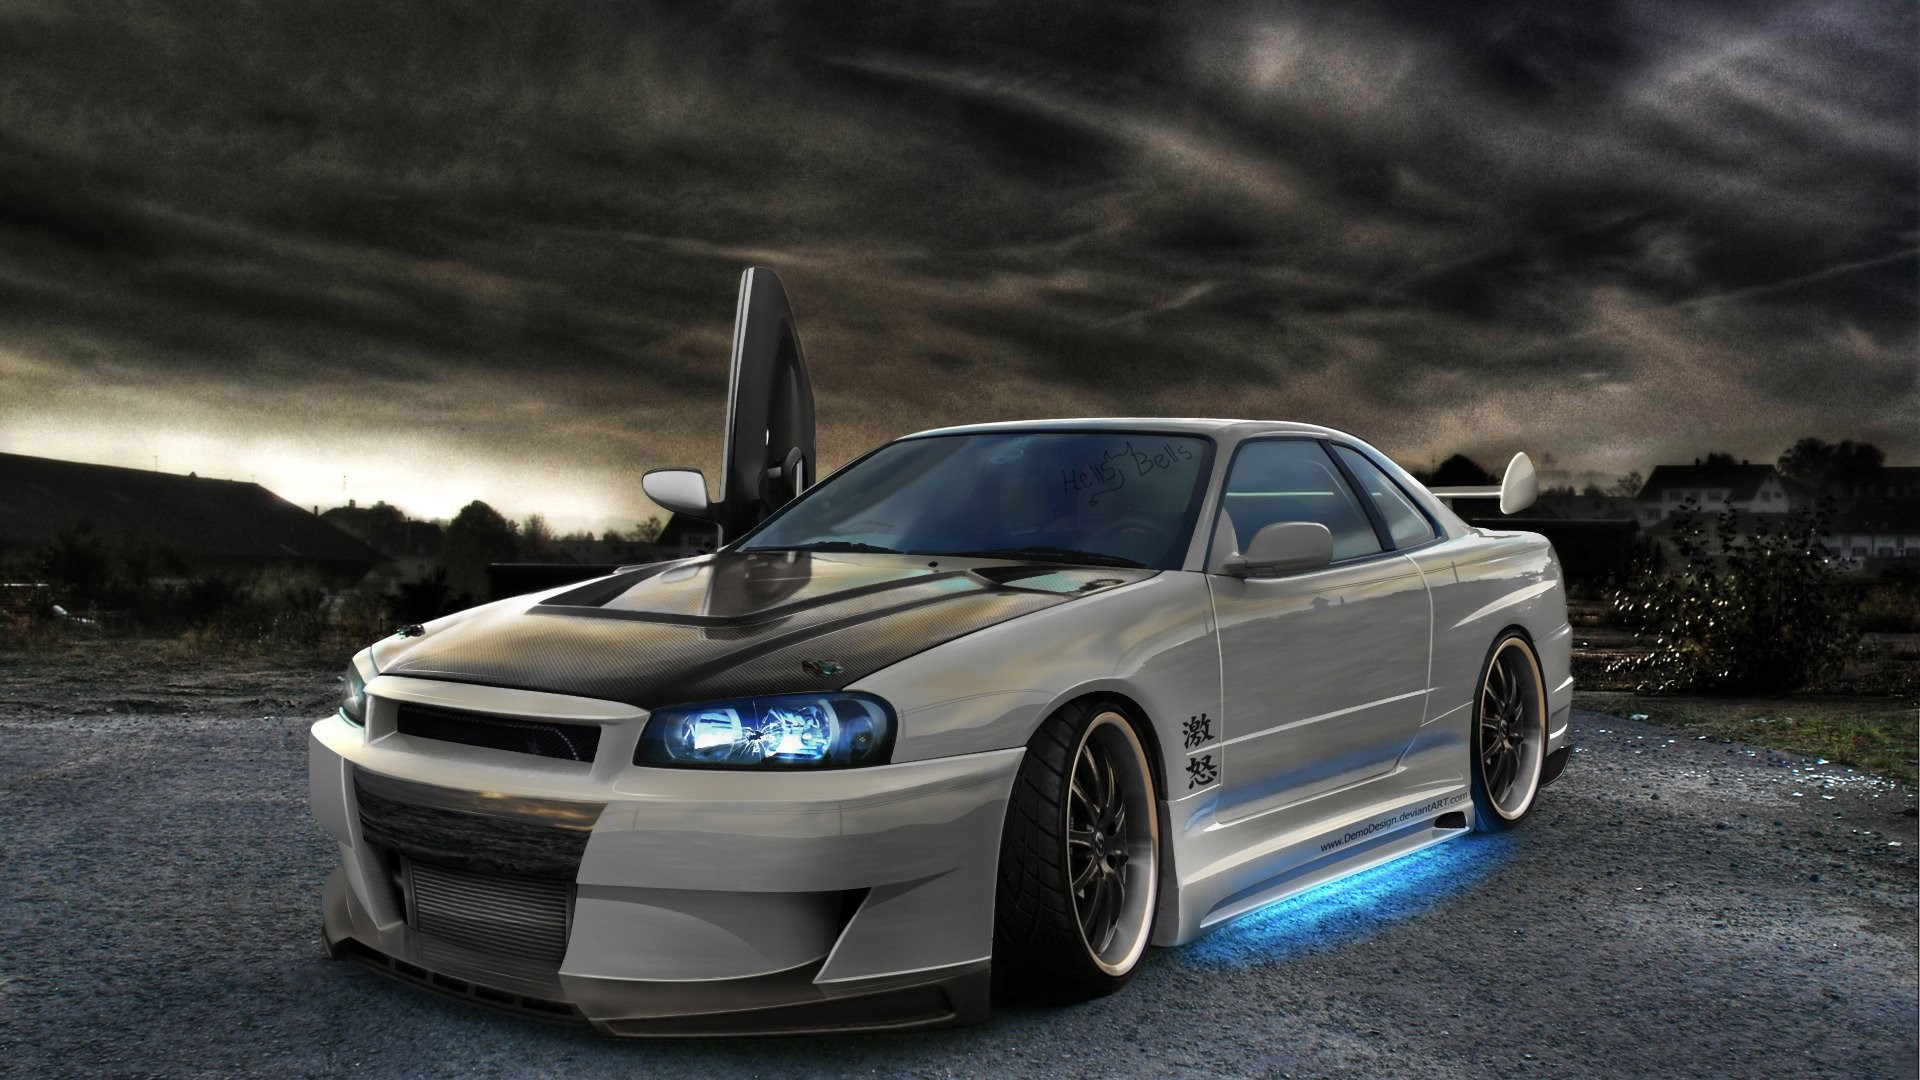 1920x1080 car, Nissan Skyline, Nissan Skyline R, Nissan, Blue Cars 1920×1280 R32  Wallpapers (46 Wallpapers) | Adorable Wallpapers | Wallpapers | Pinterest |  3d ...